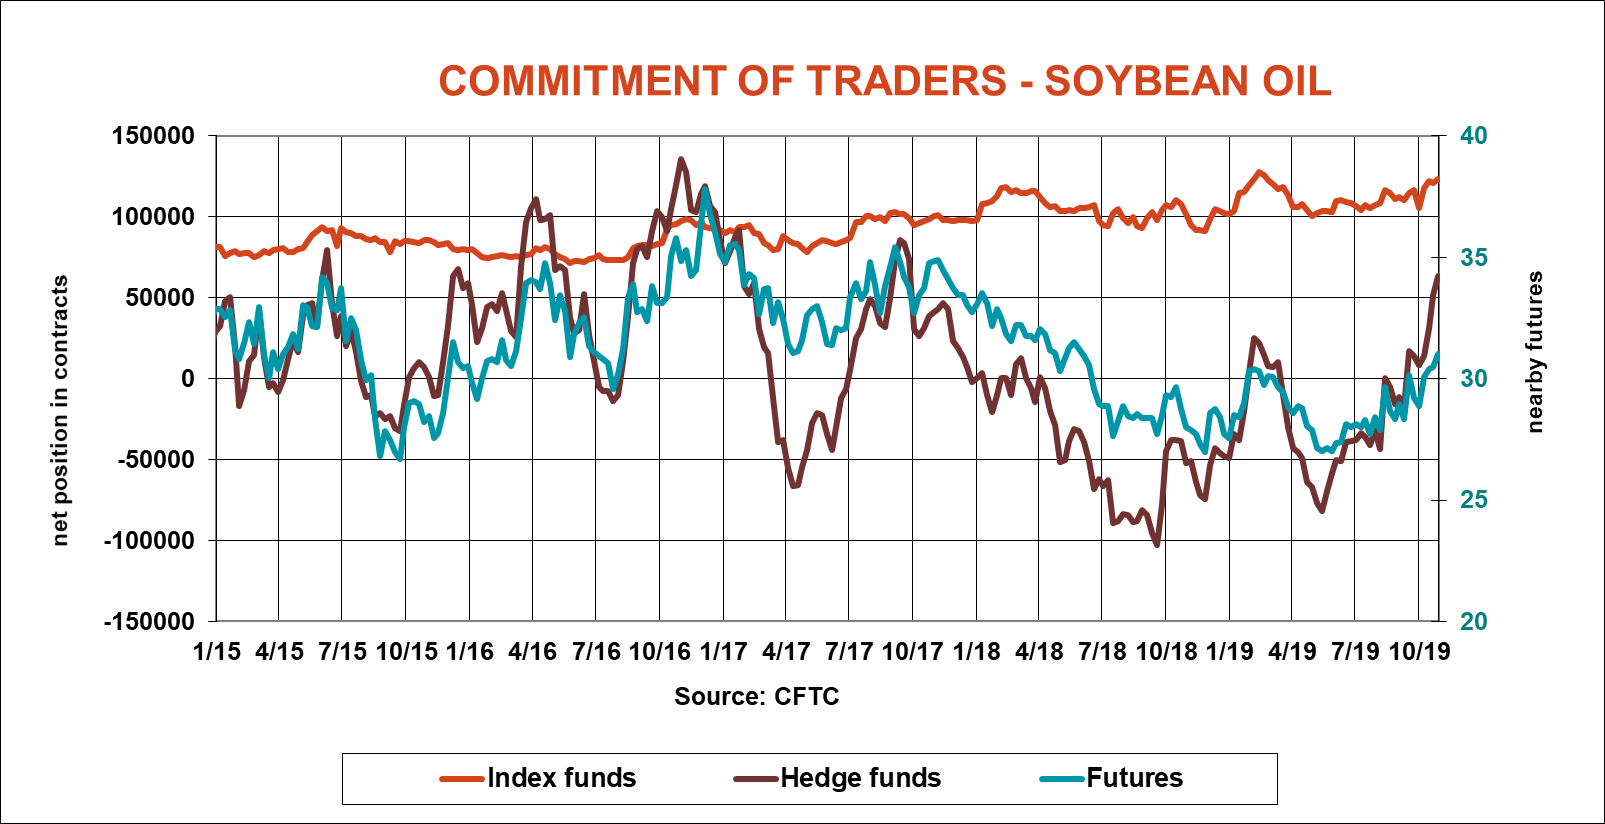 commitment-of-traders-soybean-oil-cftc-110119.png